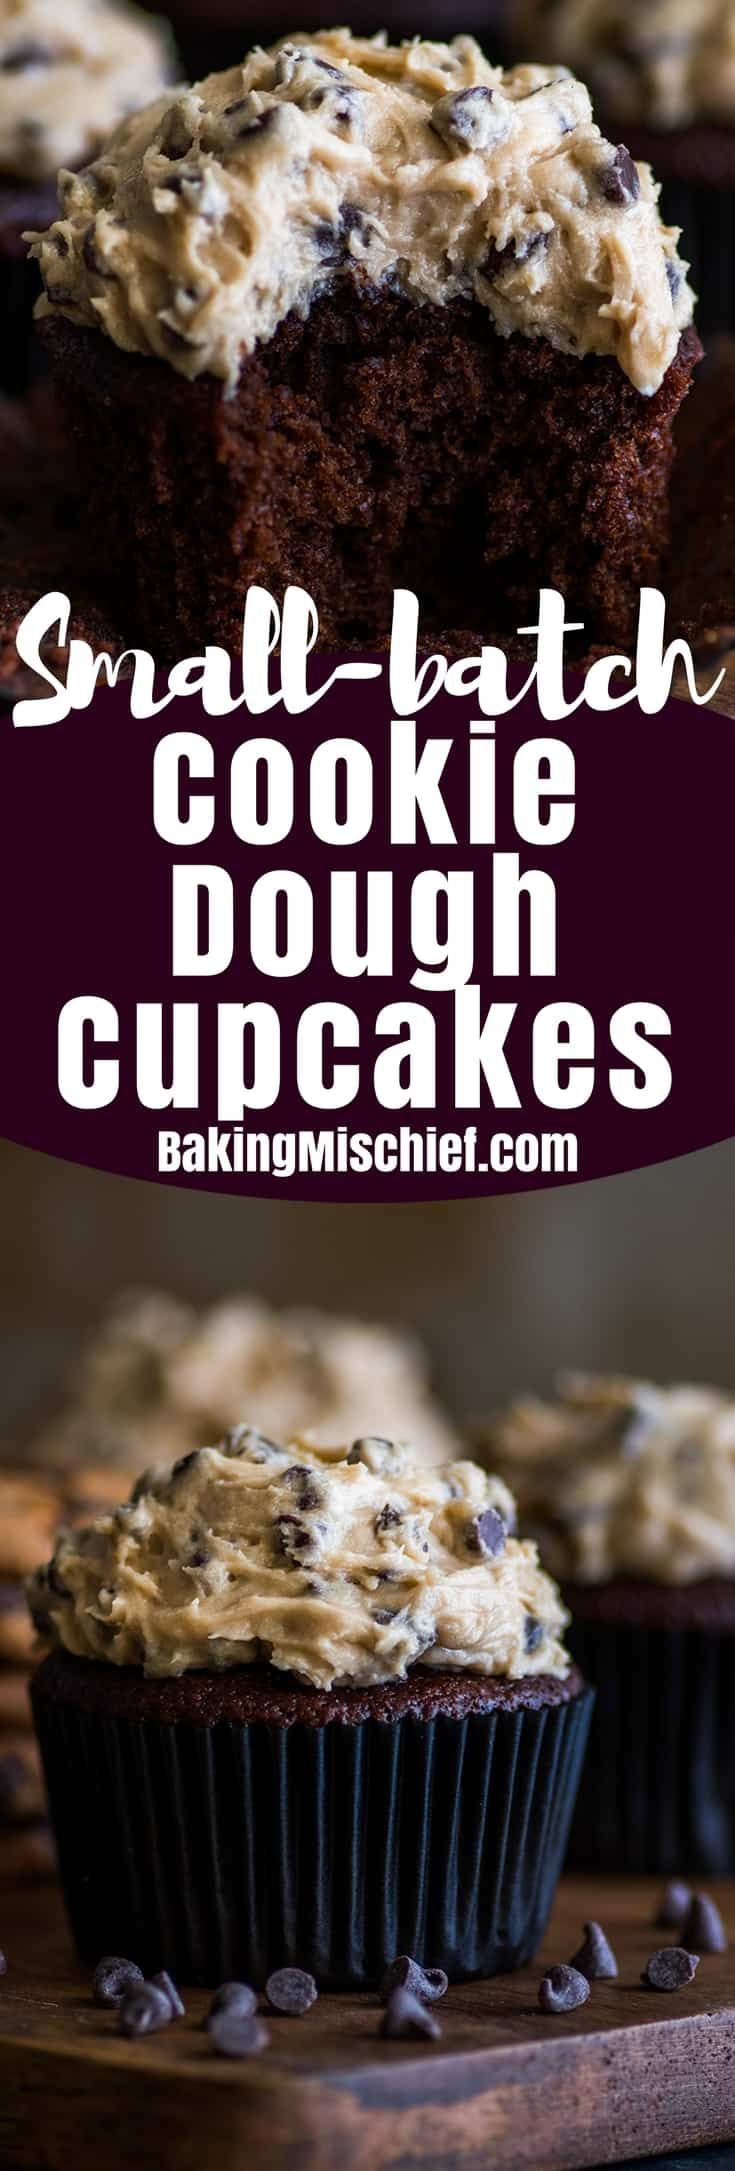 Small-batch Chocolate Cookie Dough Cupcakes are moist and decadent chocolate cupcakes smothered with a creamy, dreamy homemade cookie dough frosting. | #cookiedoughfrosting | #cupcakes | #smallbatchdessert |